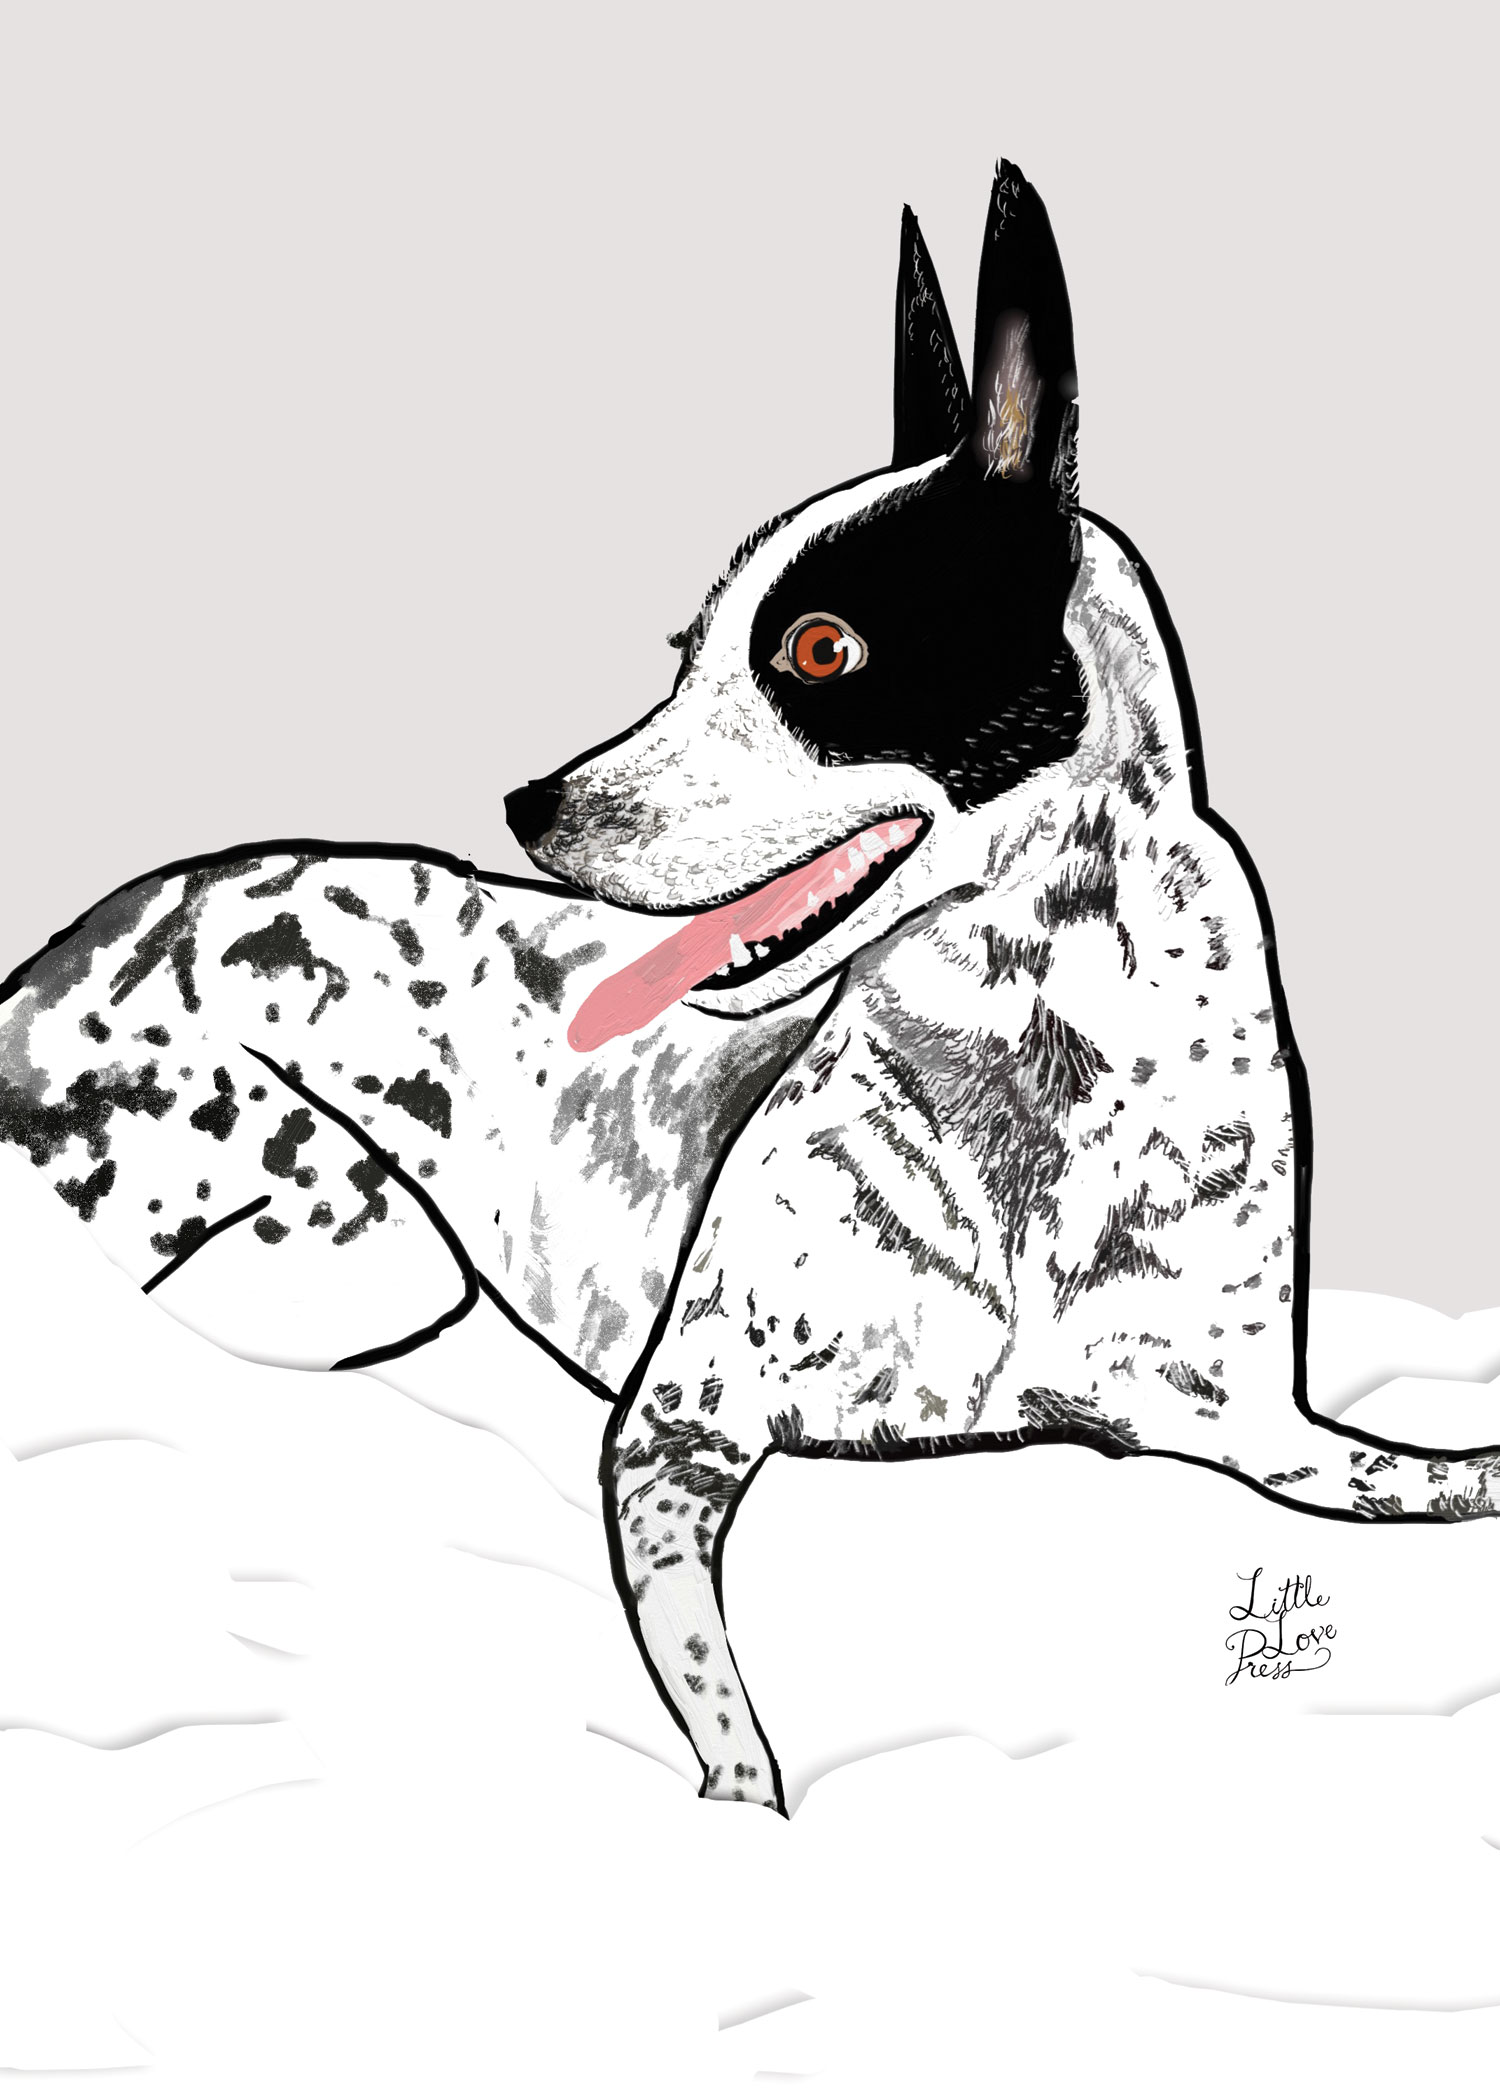 little love press custom pet portrait illustration